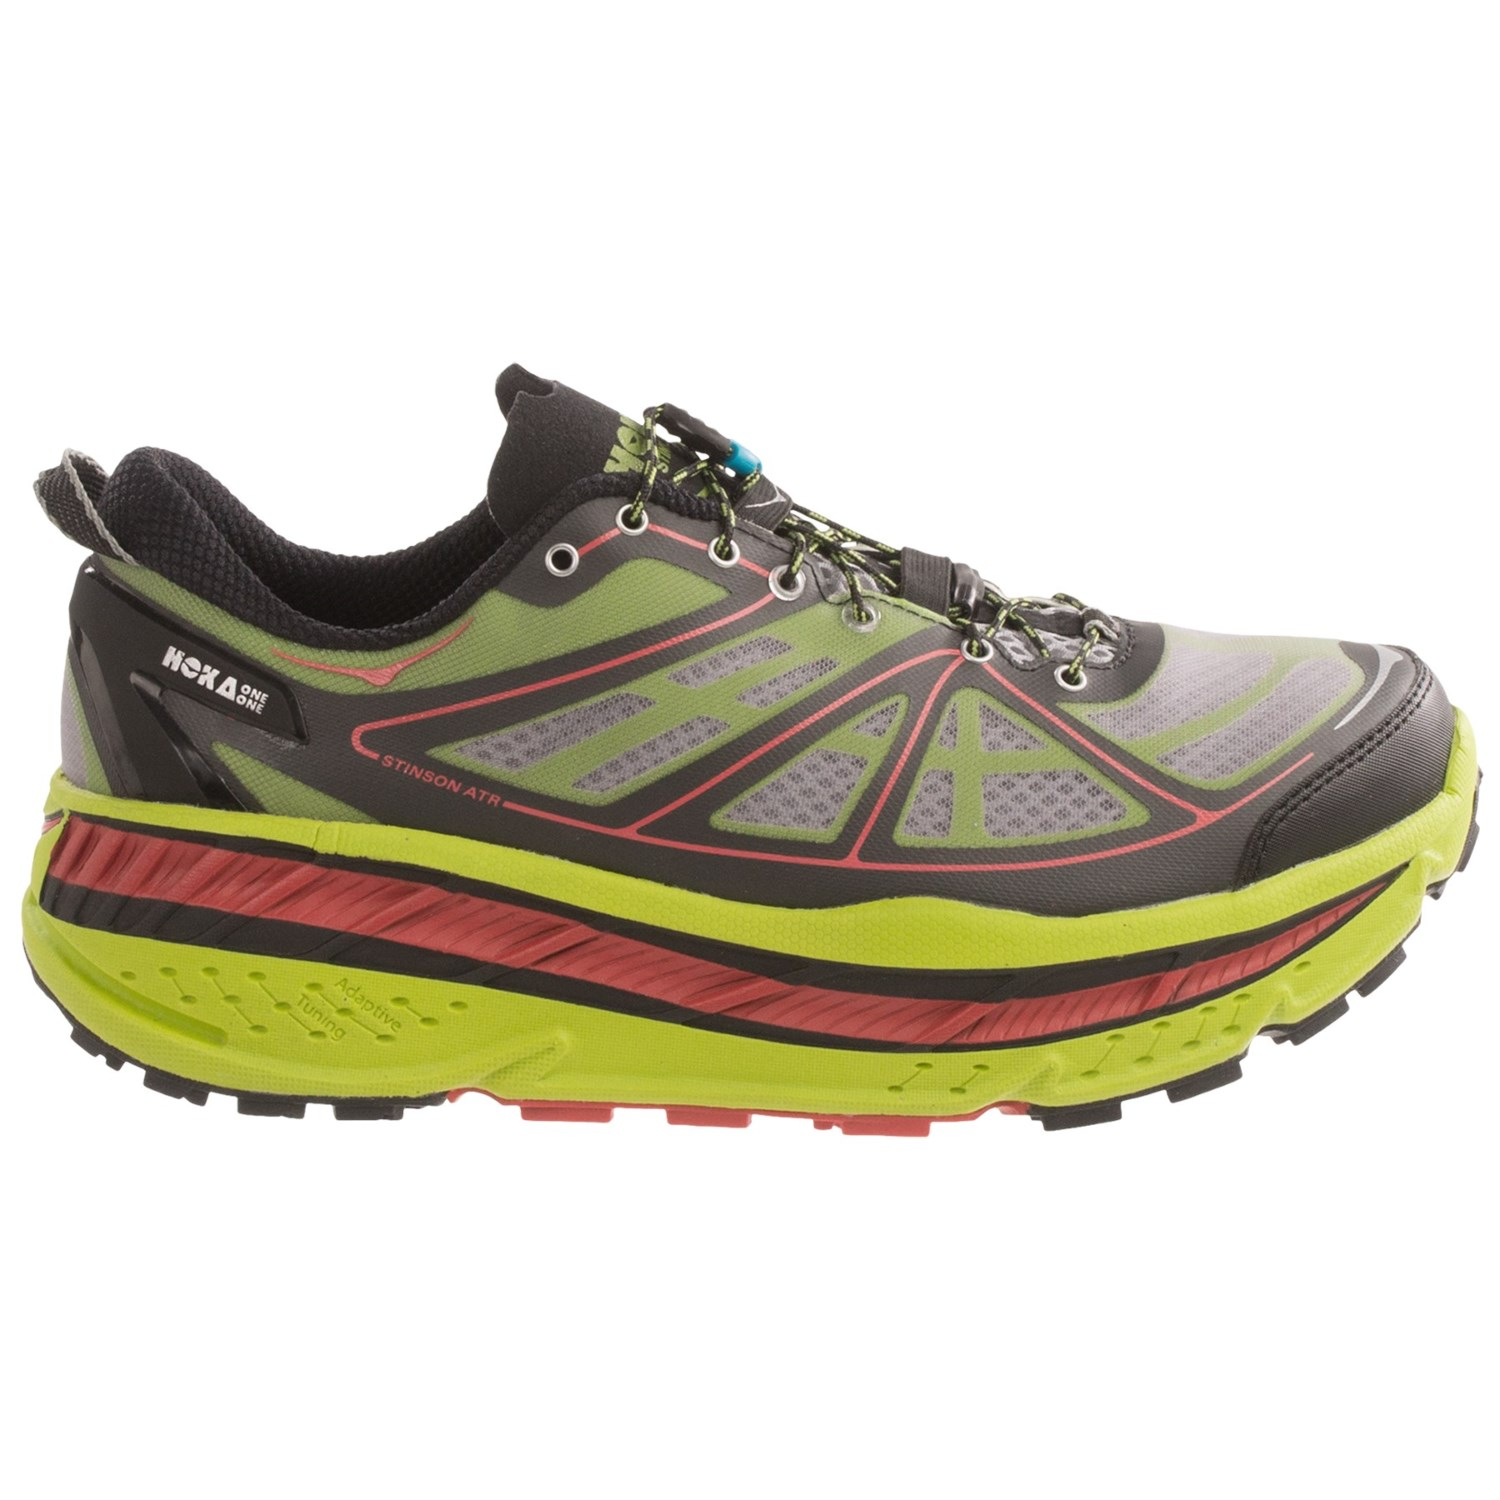 Hoka One One Stinson Trail Running Shoe